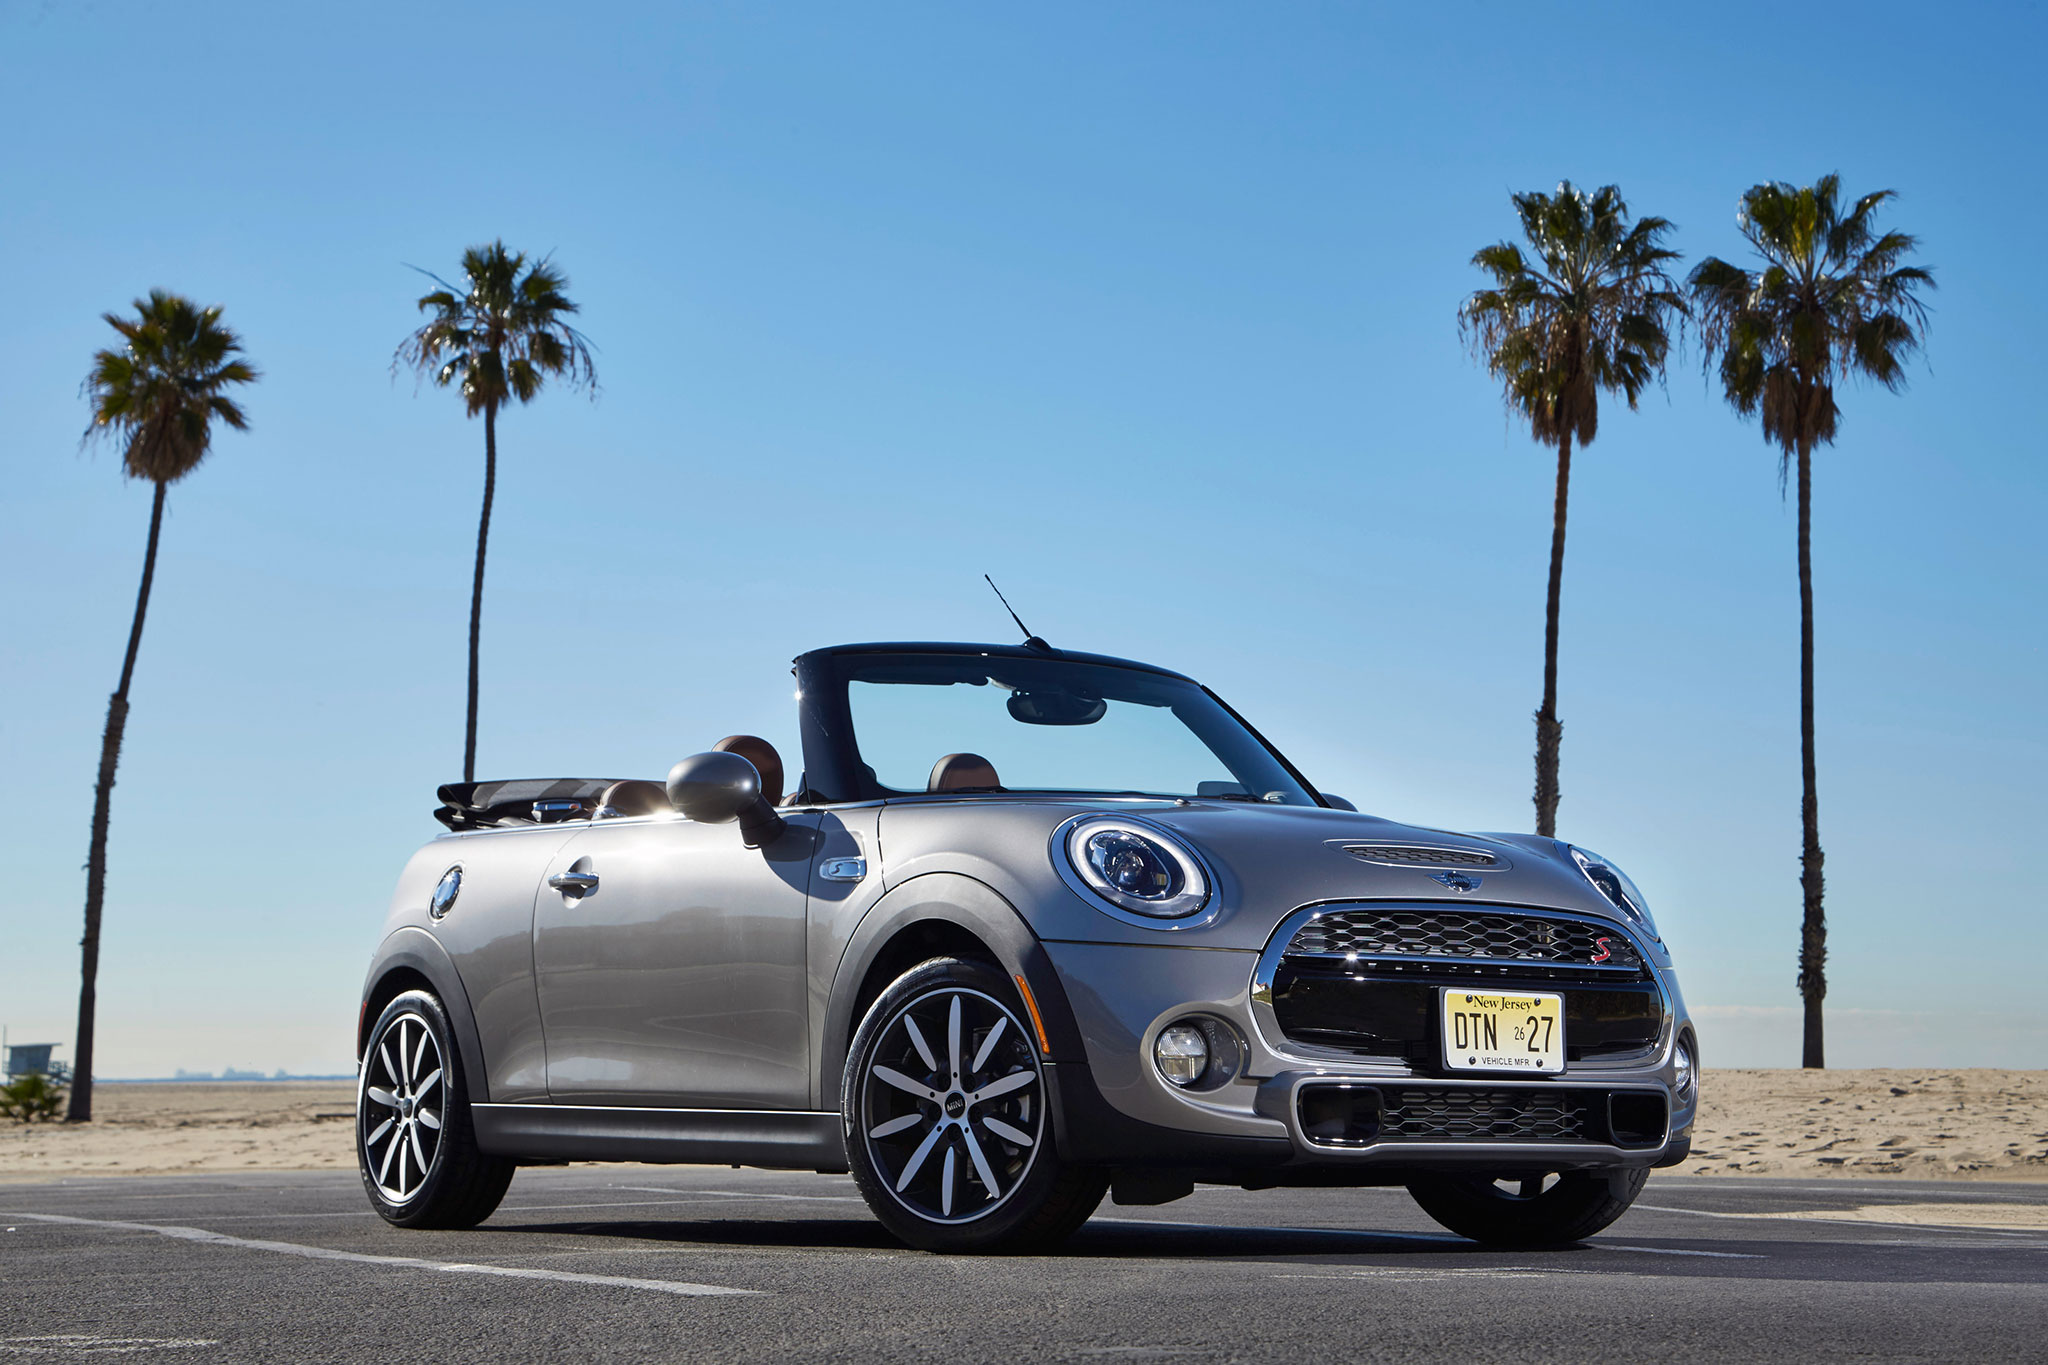 2016 Mini Cooper Hardtop 4 Door Review Mini Cooper Cars